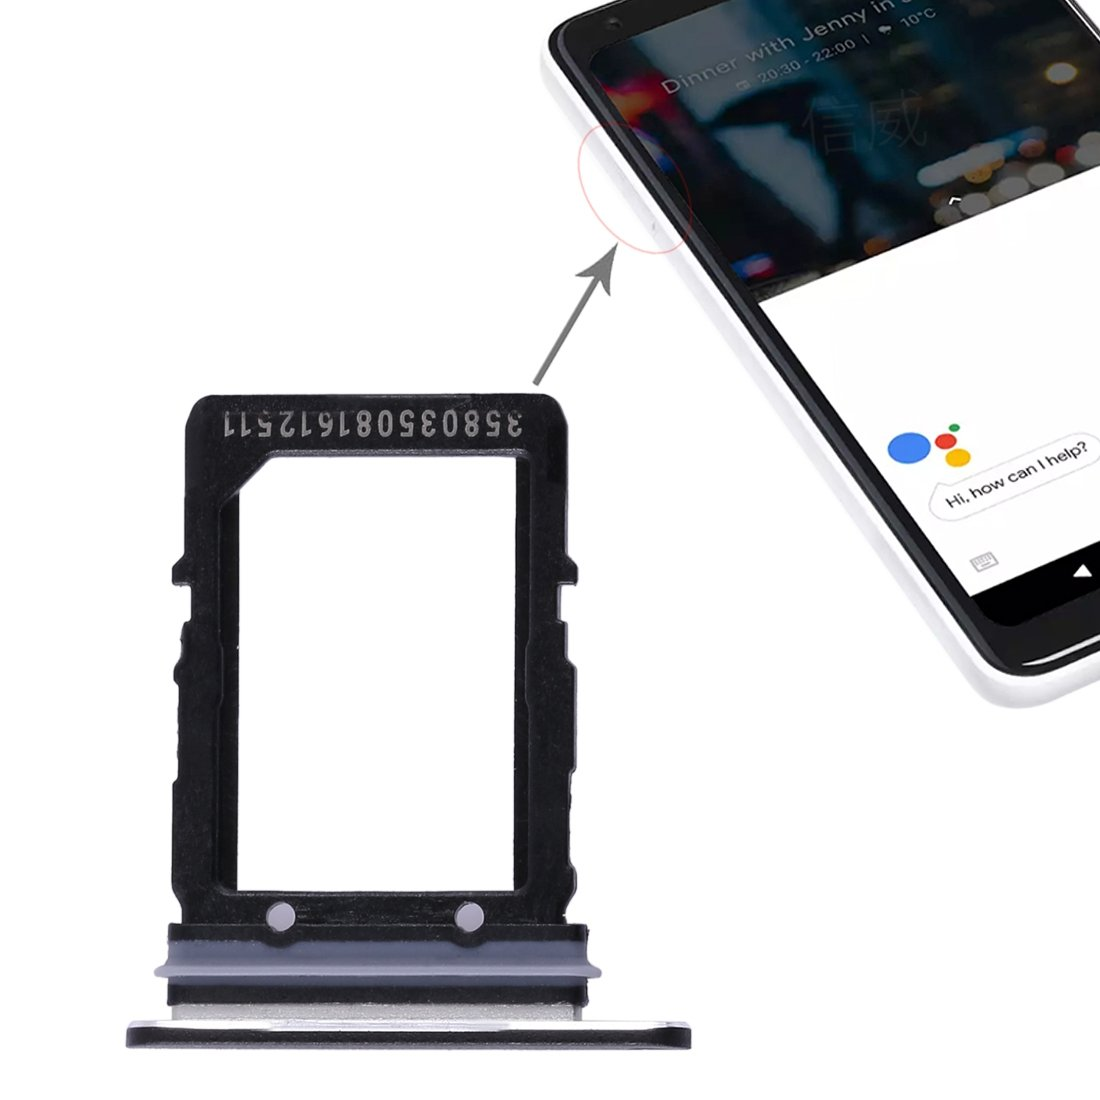 iPartsBuy SIM Card Tray Replacement for Google Pixel 2 XL by iPartsBuy